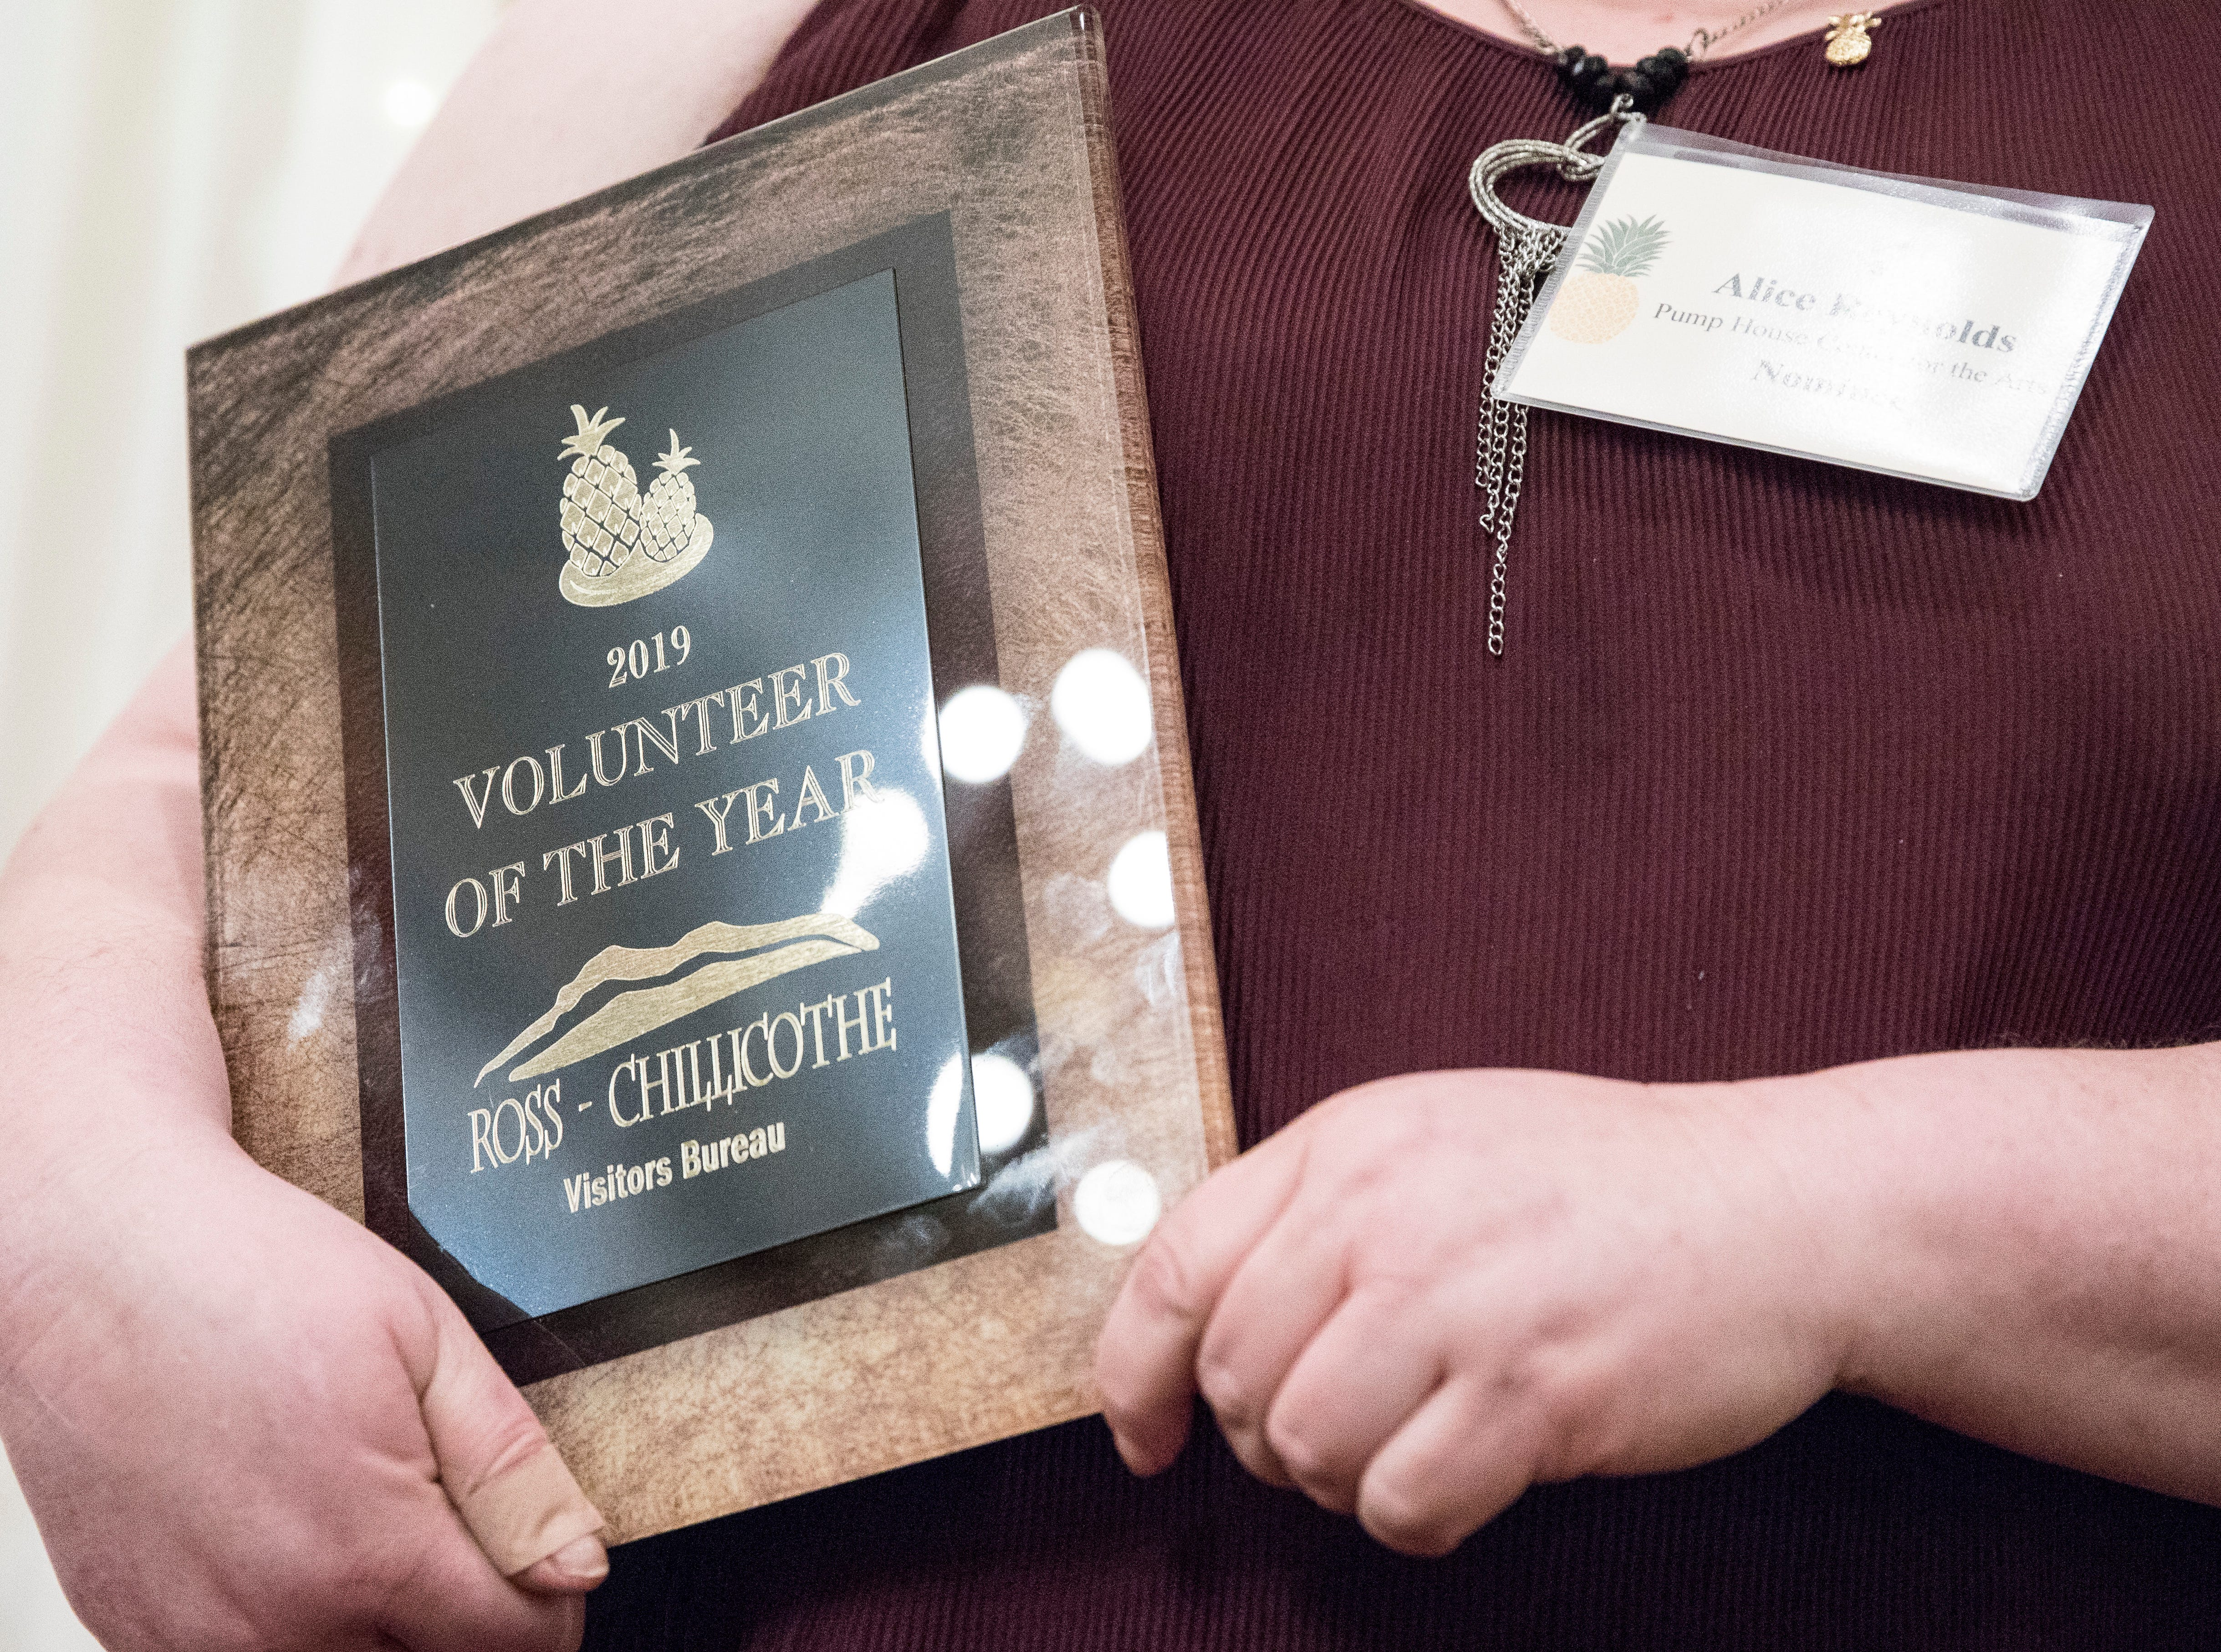 Alice Reynolds from the Pump House received the 2019 Volunteer of the Year Award at the Christopher Conference Center in Chillicothe, Ohio, on May 6, 2019.